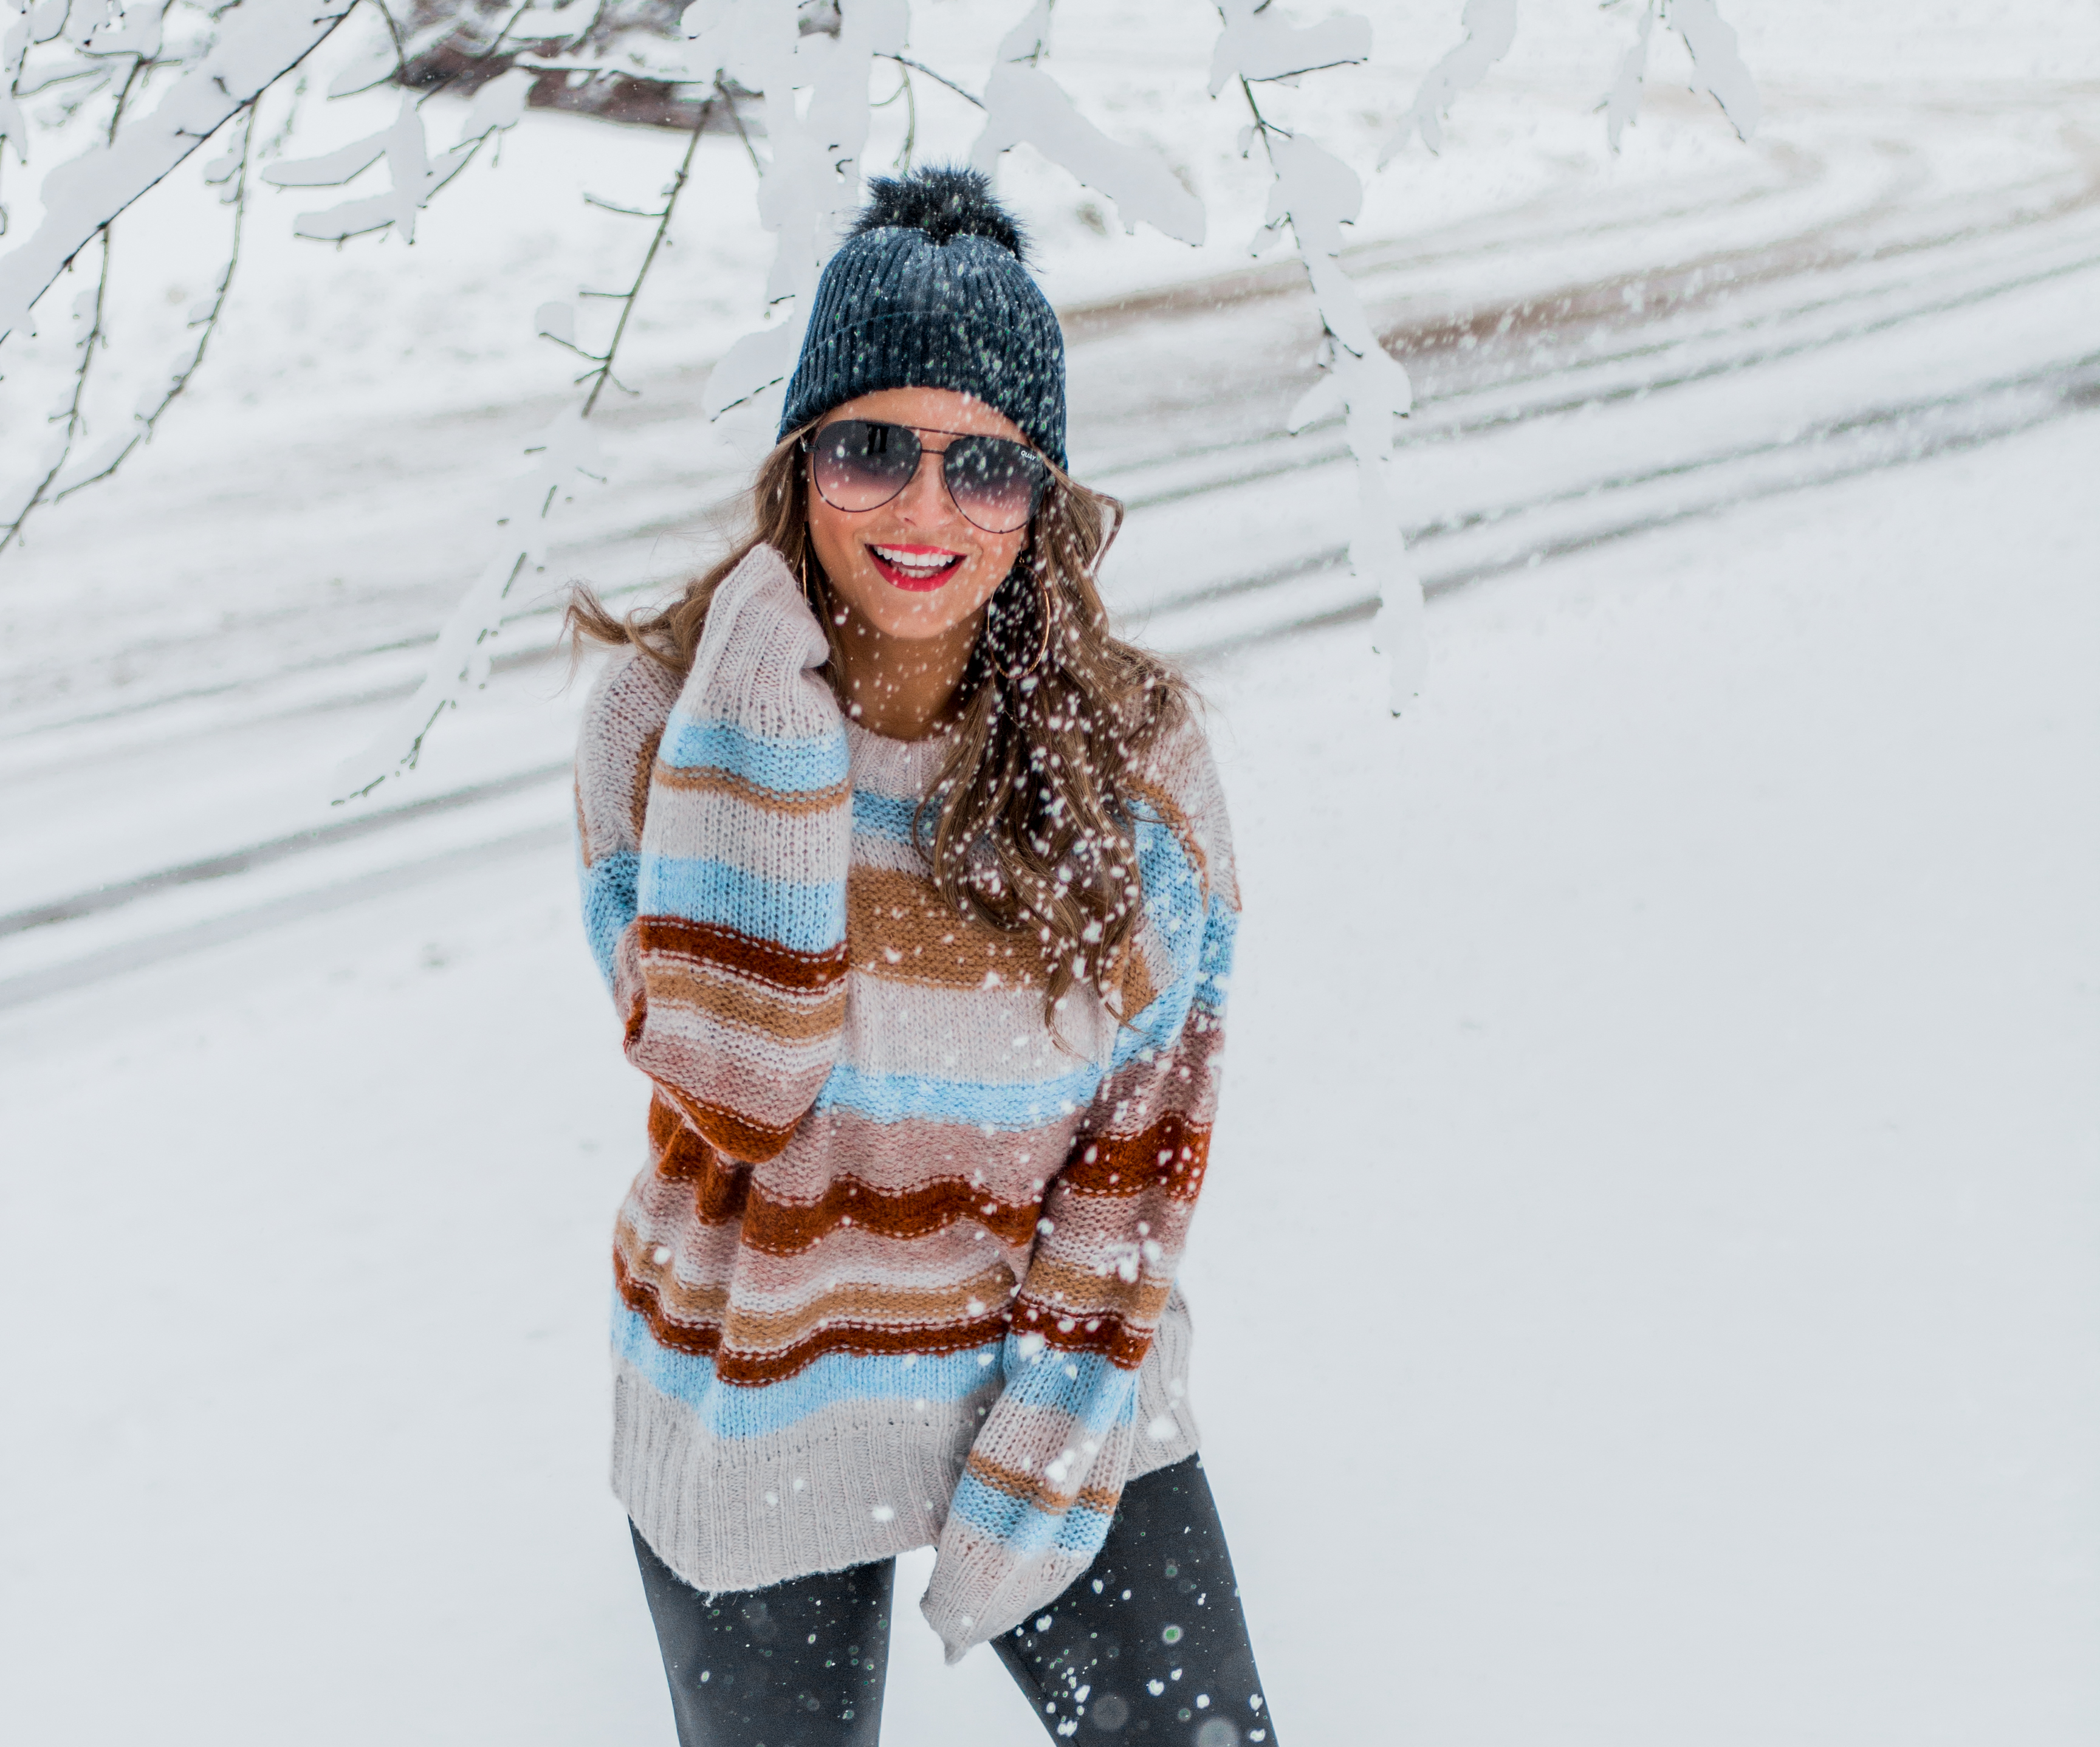 Women's Fashion - American Eagle Sweater - Hunter Boots - Beanie - Snow Day - OOTD - Fashion Blogger - Winter Fashion - 14